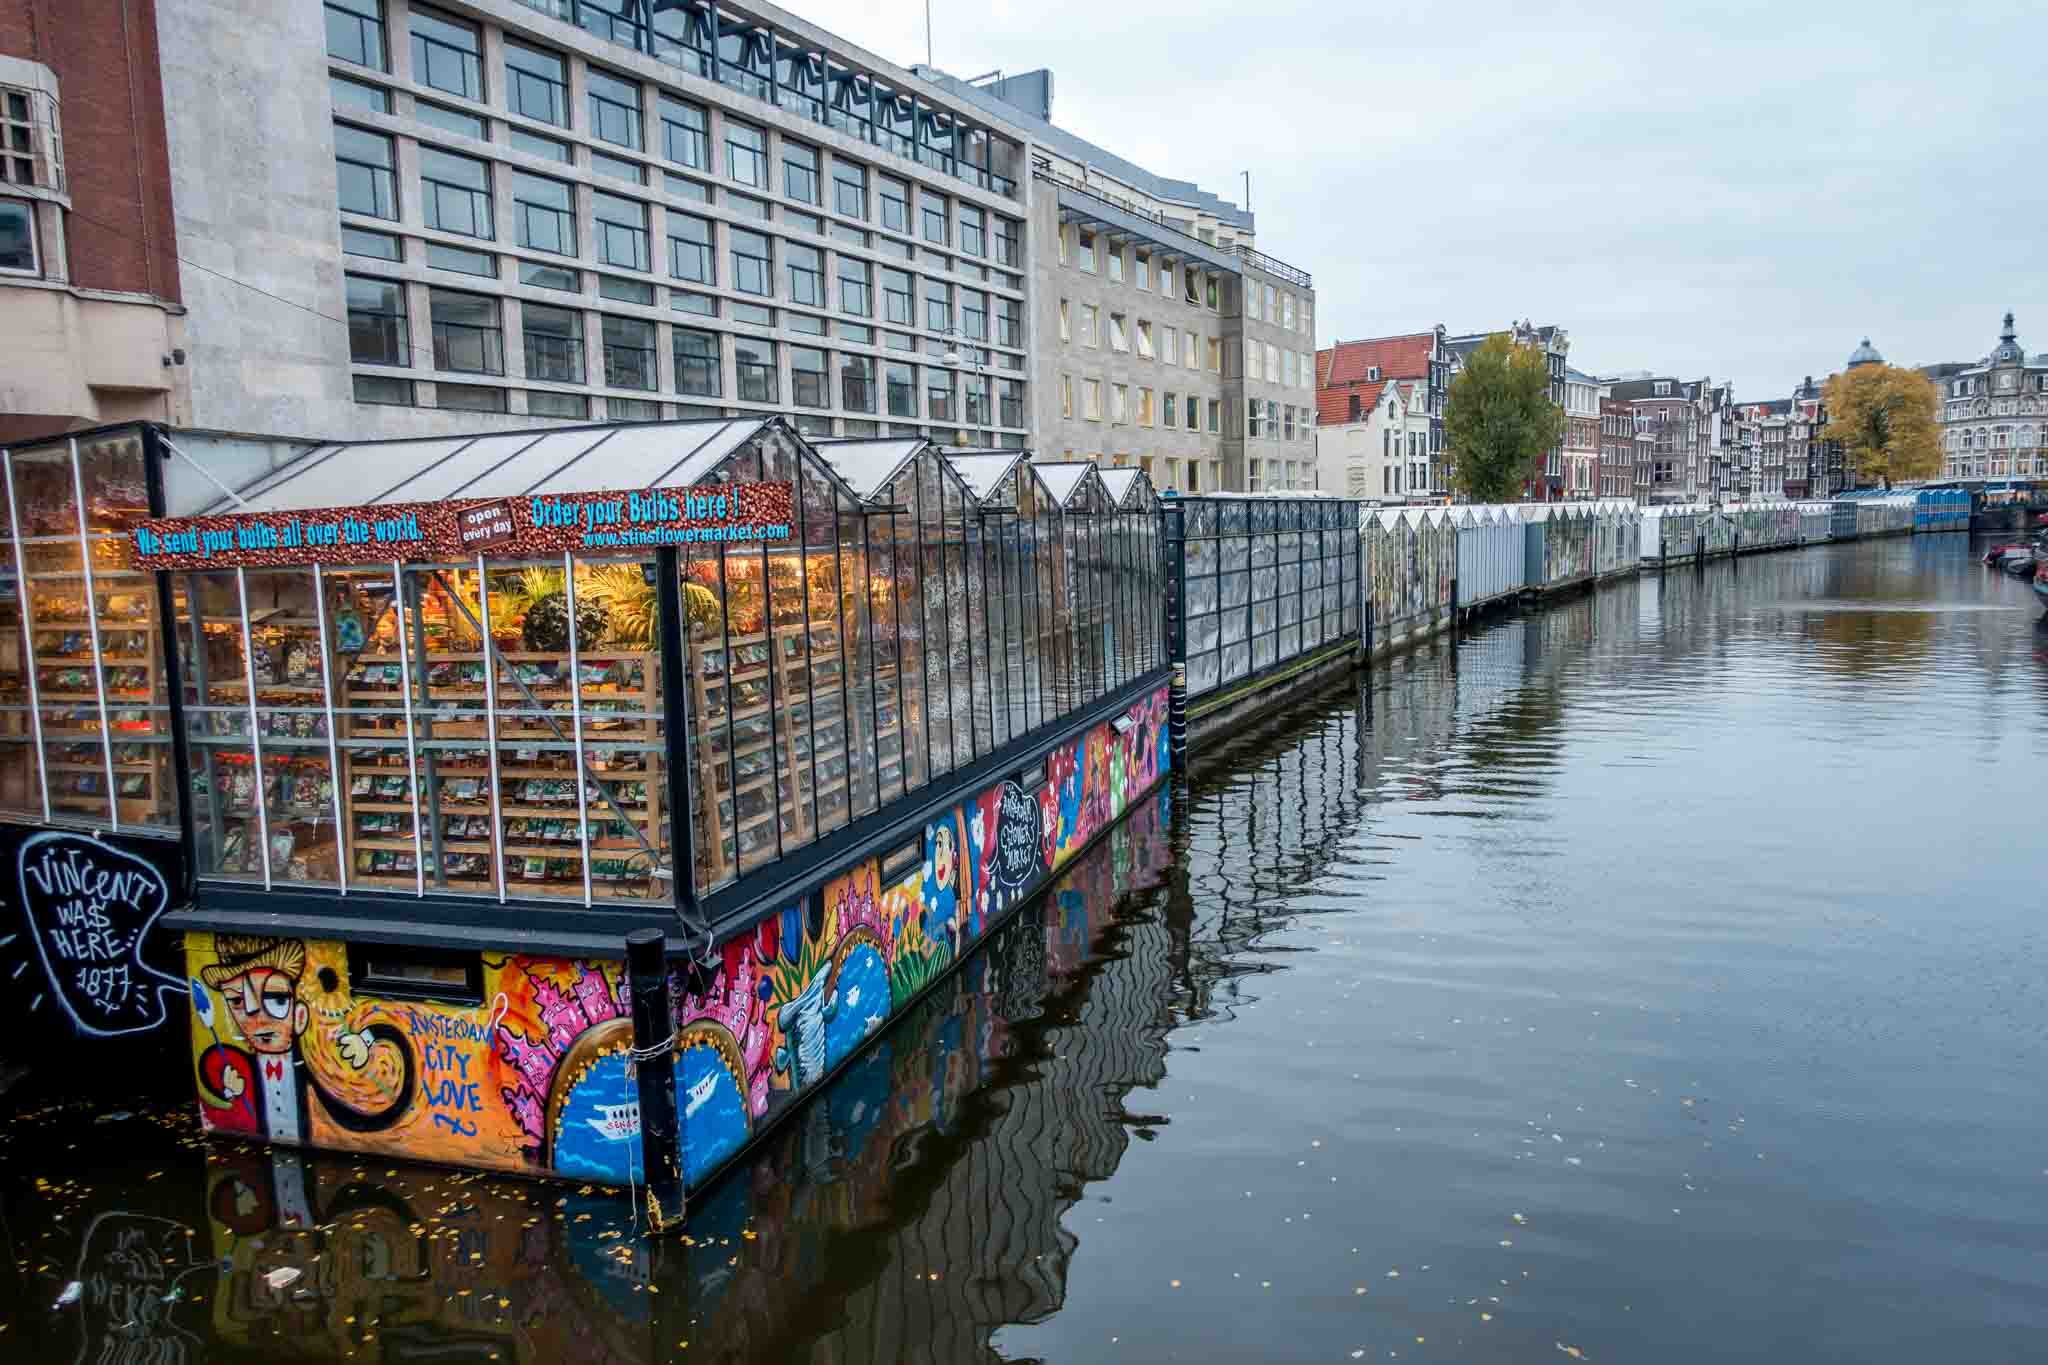 Floating glass booths in a canal comprise the flower market